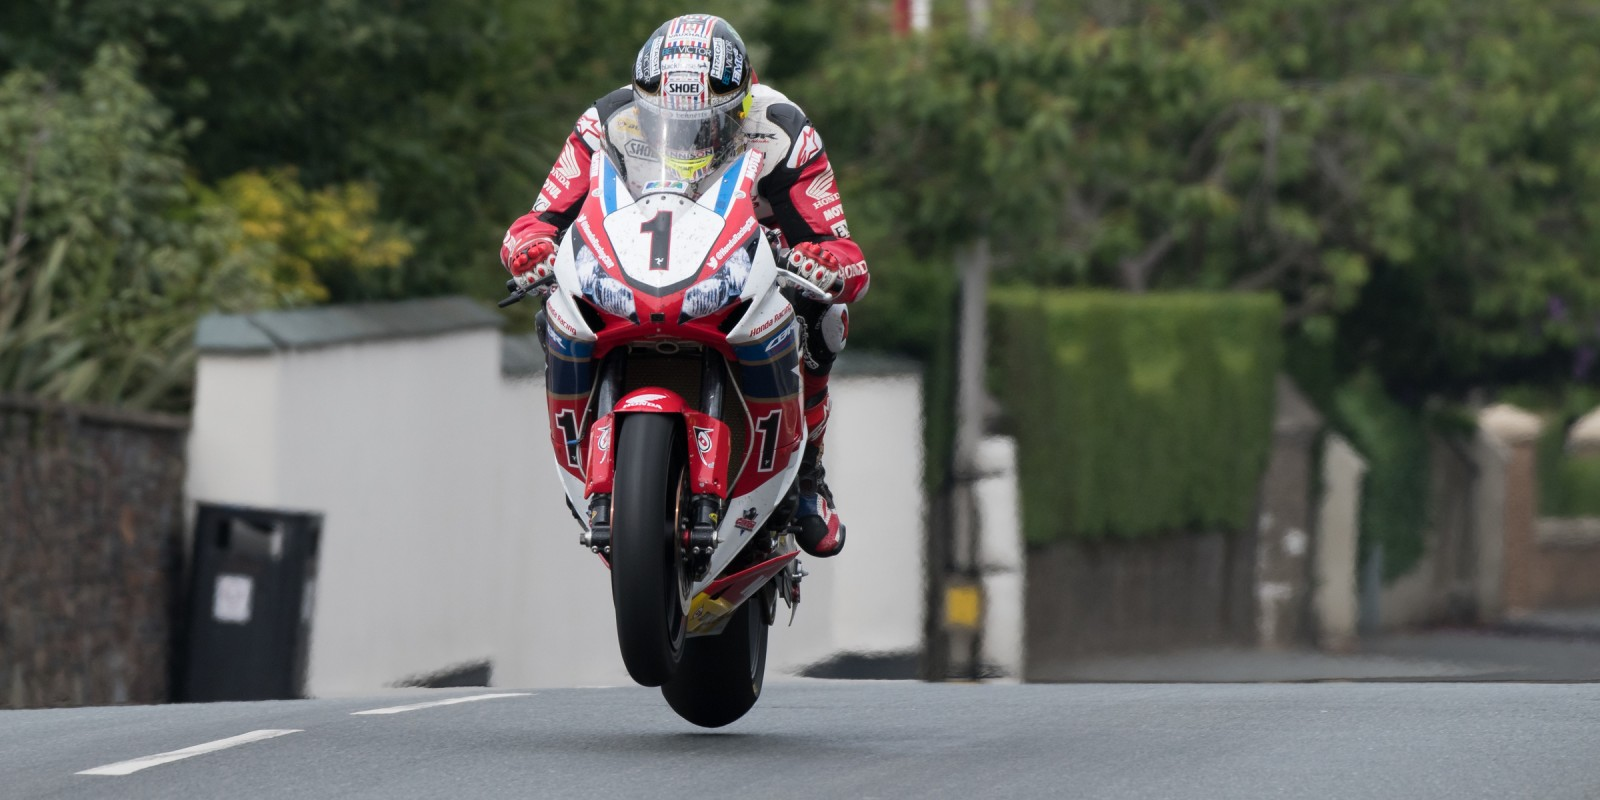 Images from the 2016 Isle of Man TT